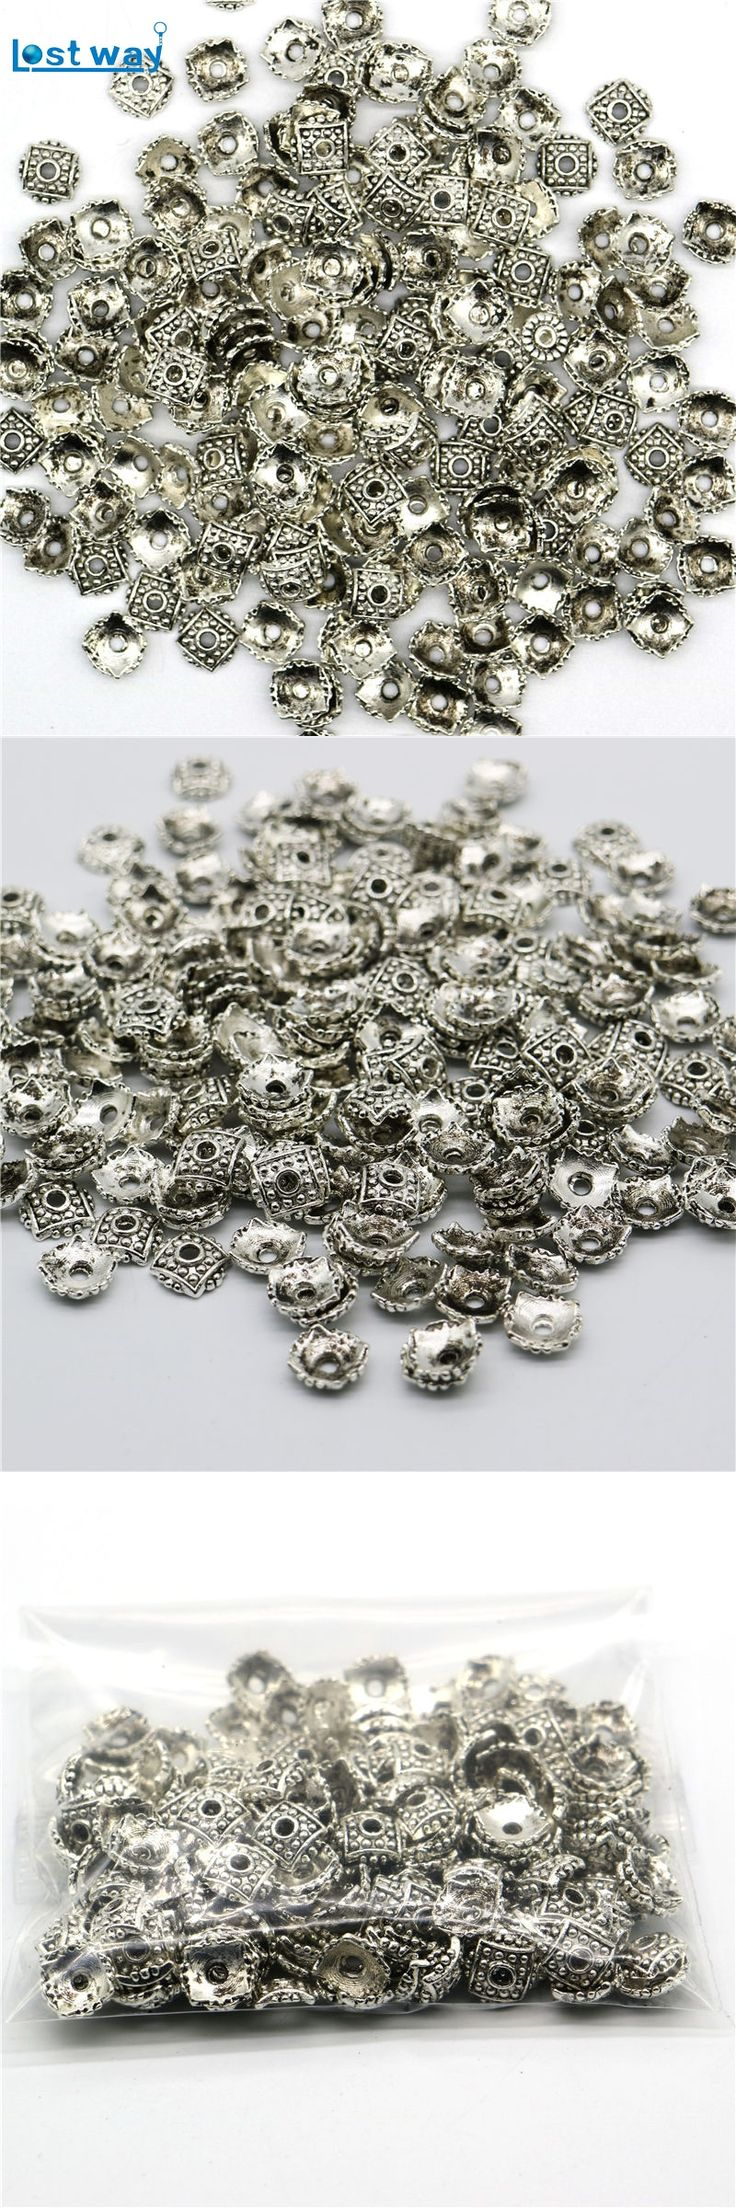 Wholesale 8mm 200pcs/lot Zinc Alloy End Caps Bead Caps Tibetan Silver Plated FlowerSpacer Beads Charms For Jewelry Findings